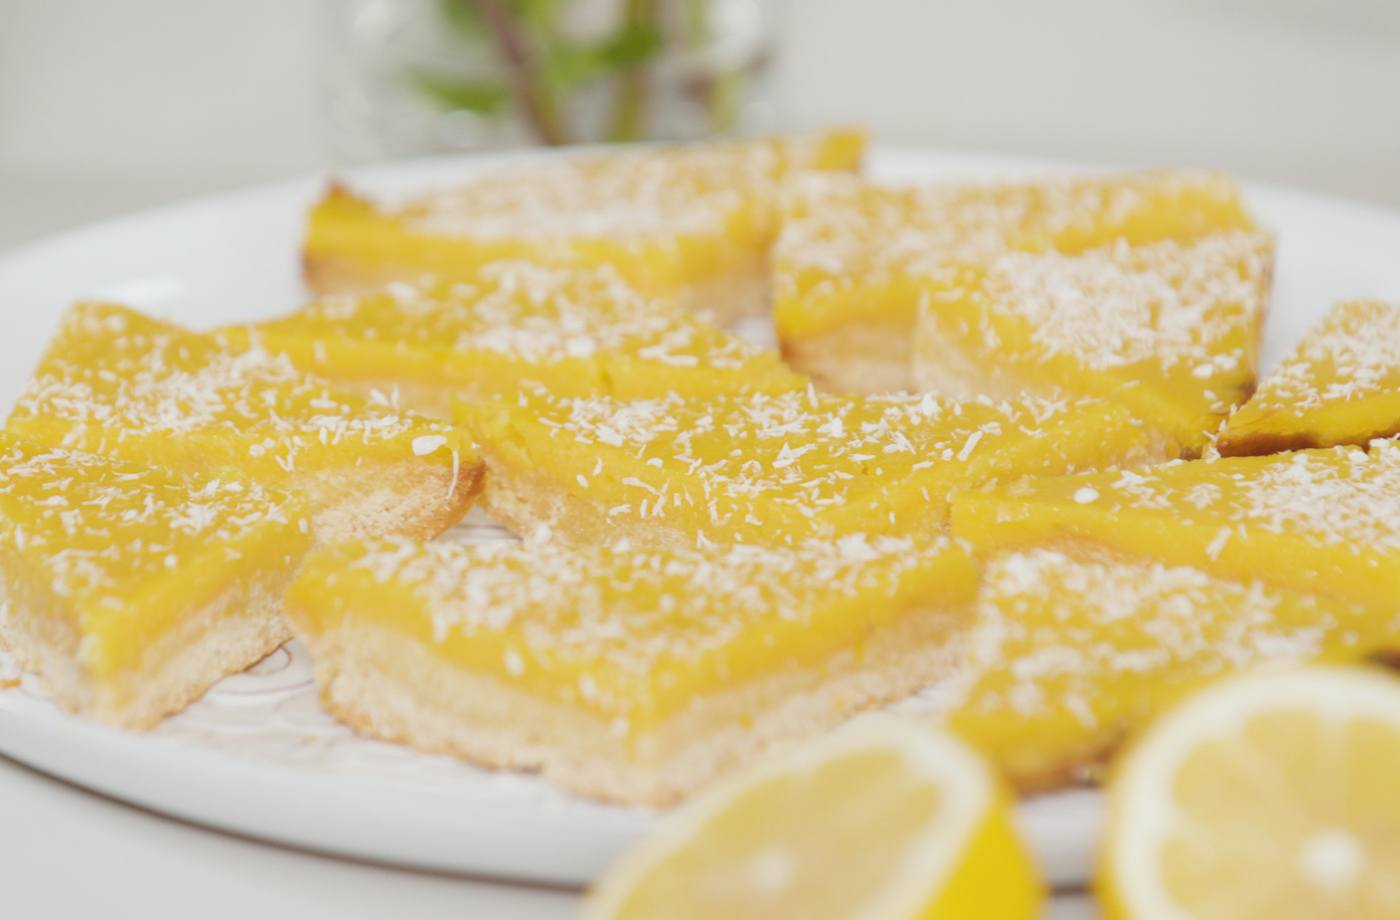 How to make healthy lemon bars with no refined sugar or flour | Well+Good